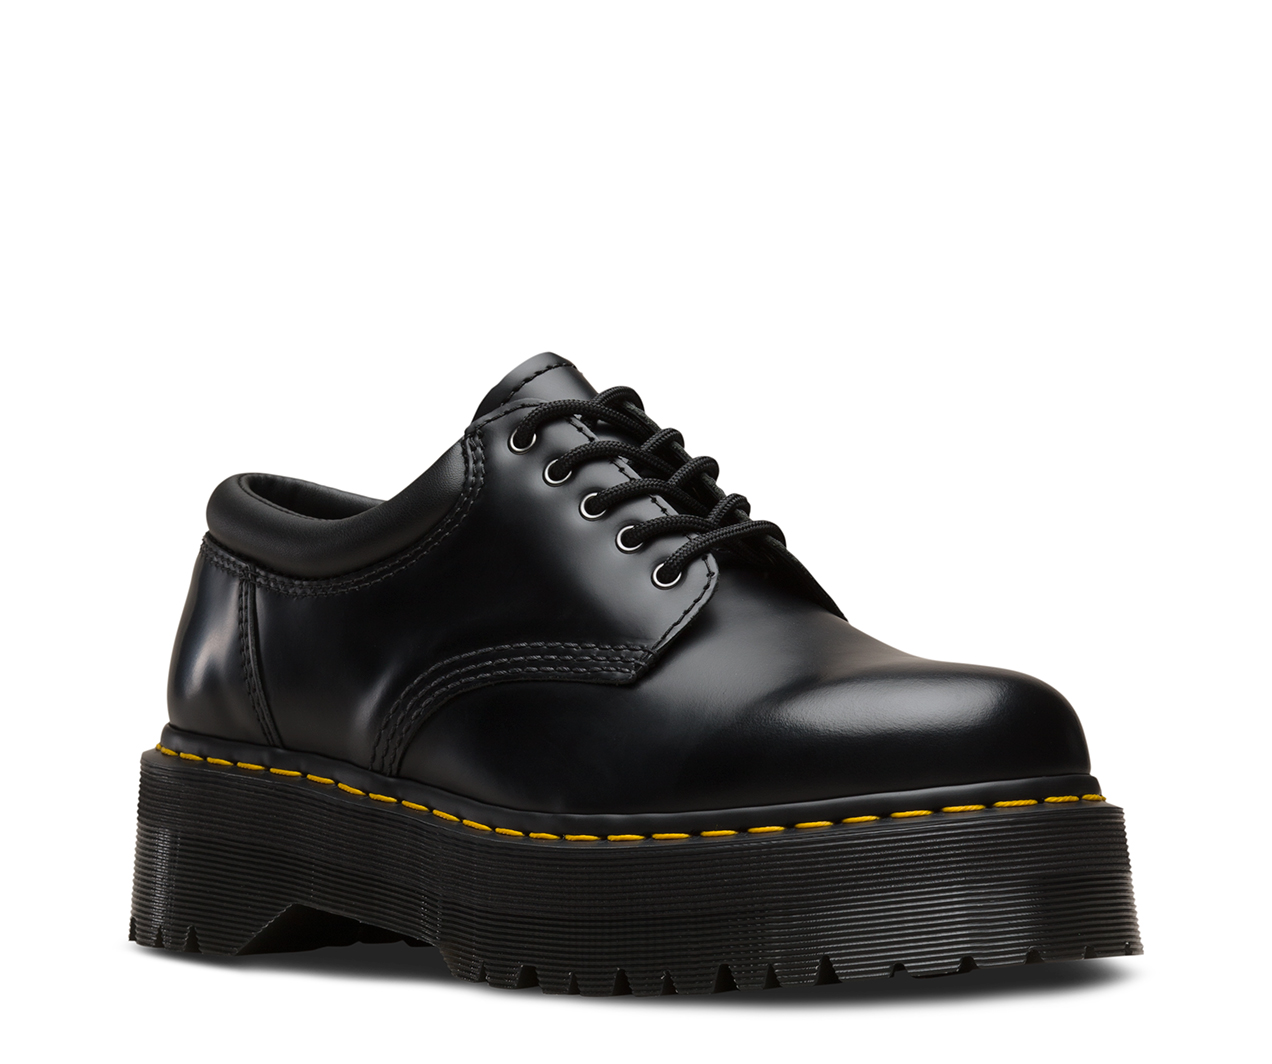 8053 Platform 8053 5 Eye Shoes Dr Martens Official